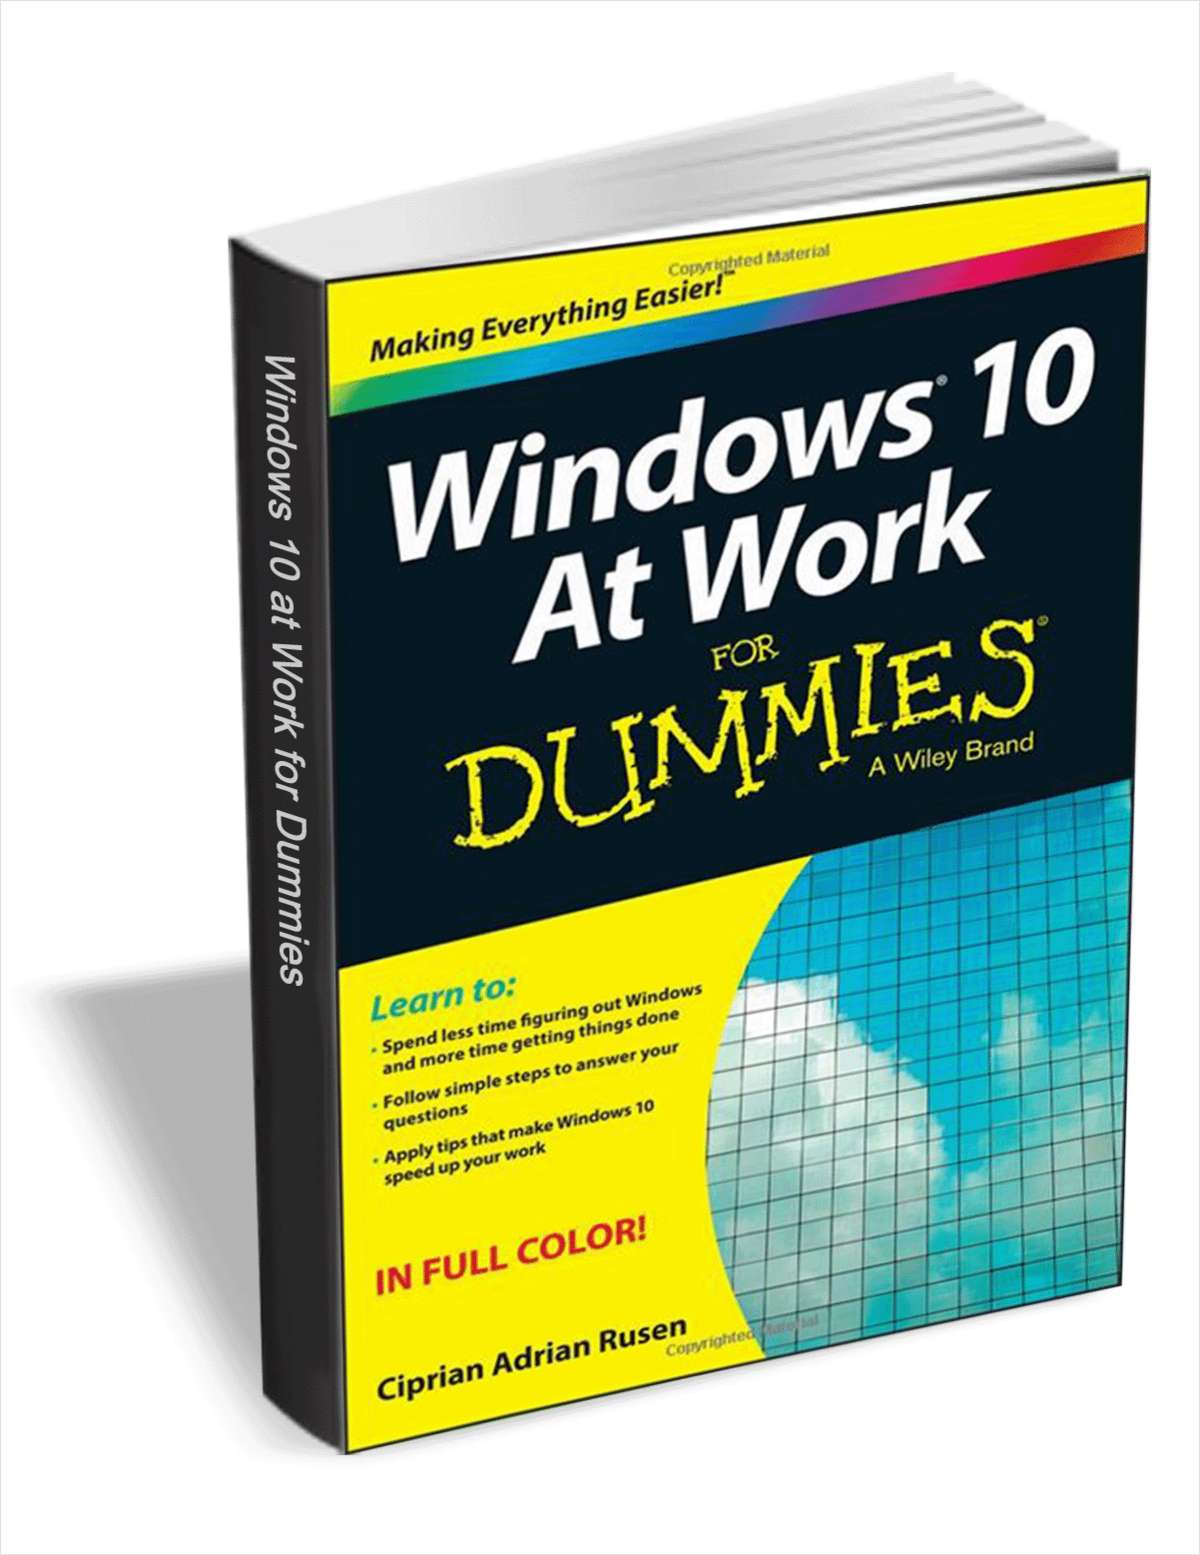 Windows 10 at Work for Dummies - FREE for a limited time (Regular Price $17.99)